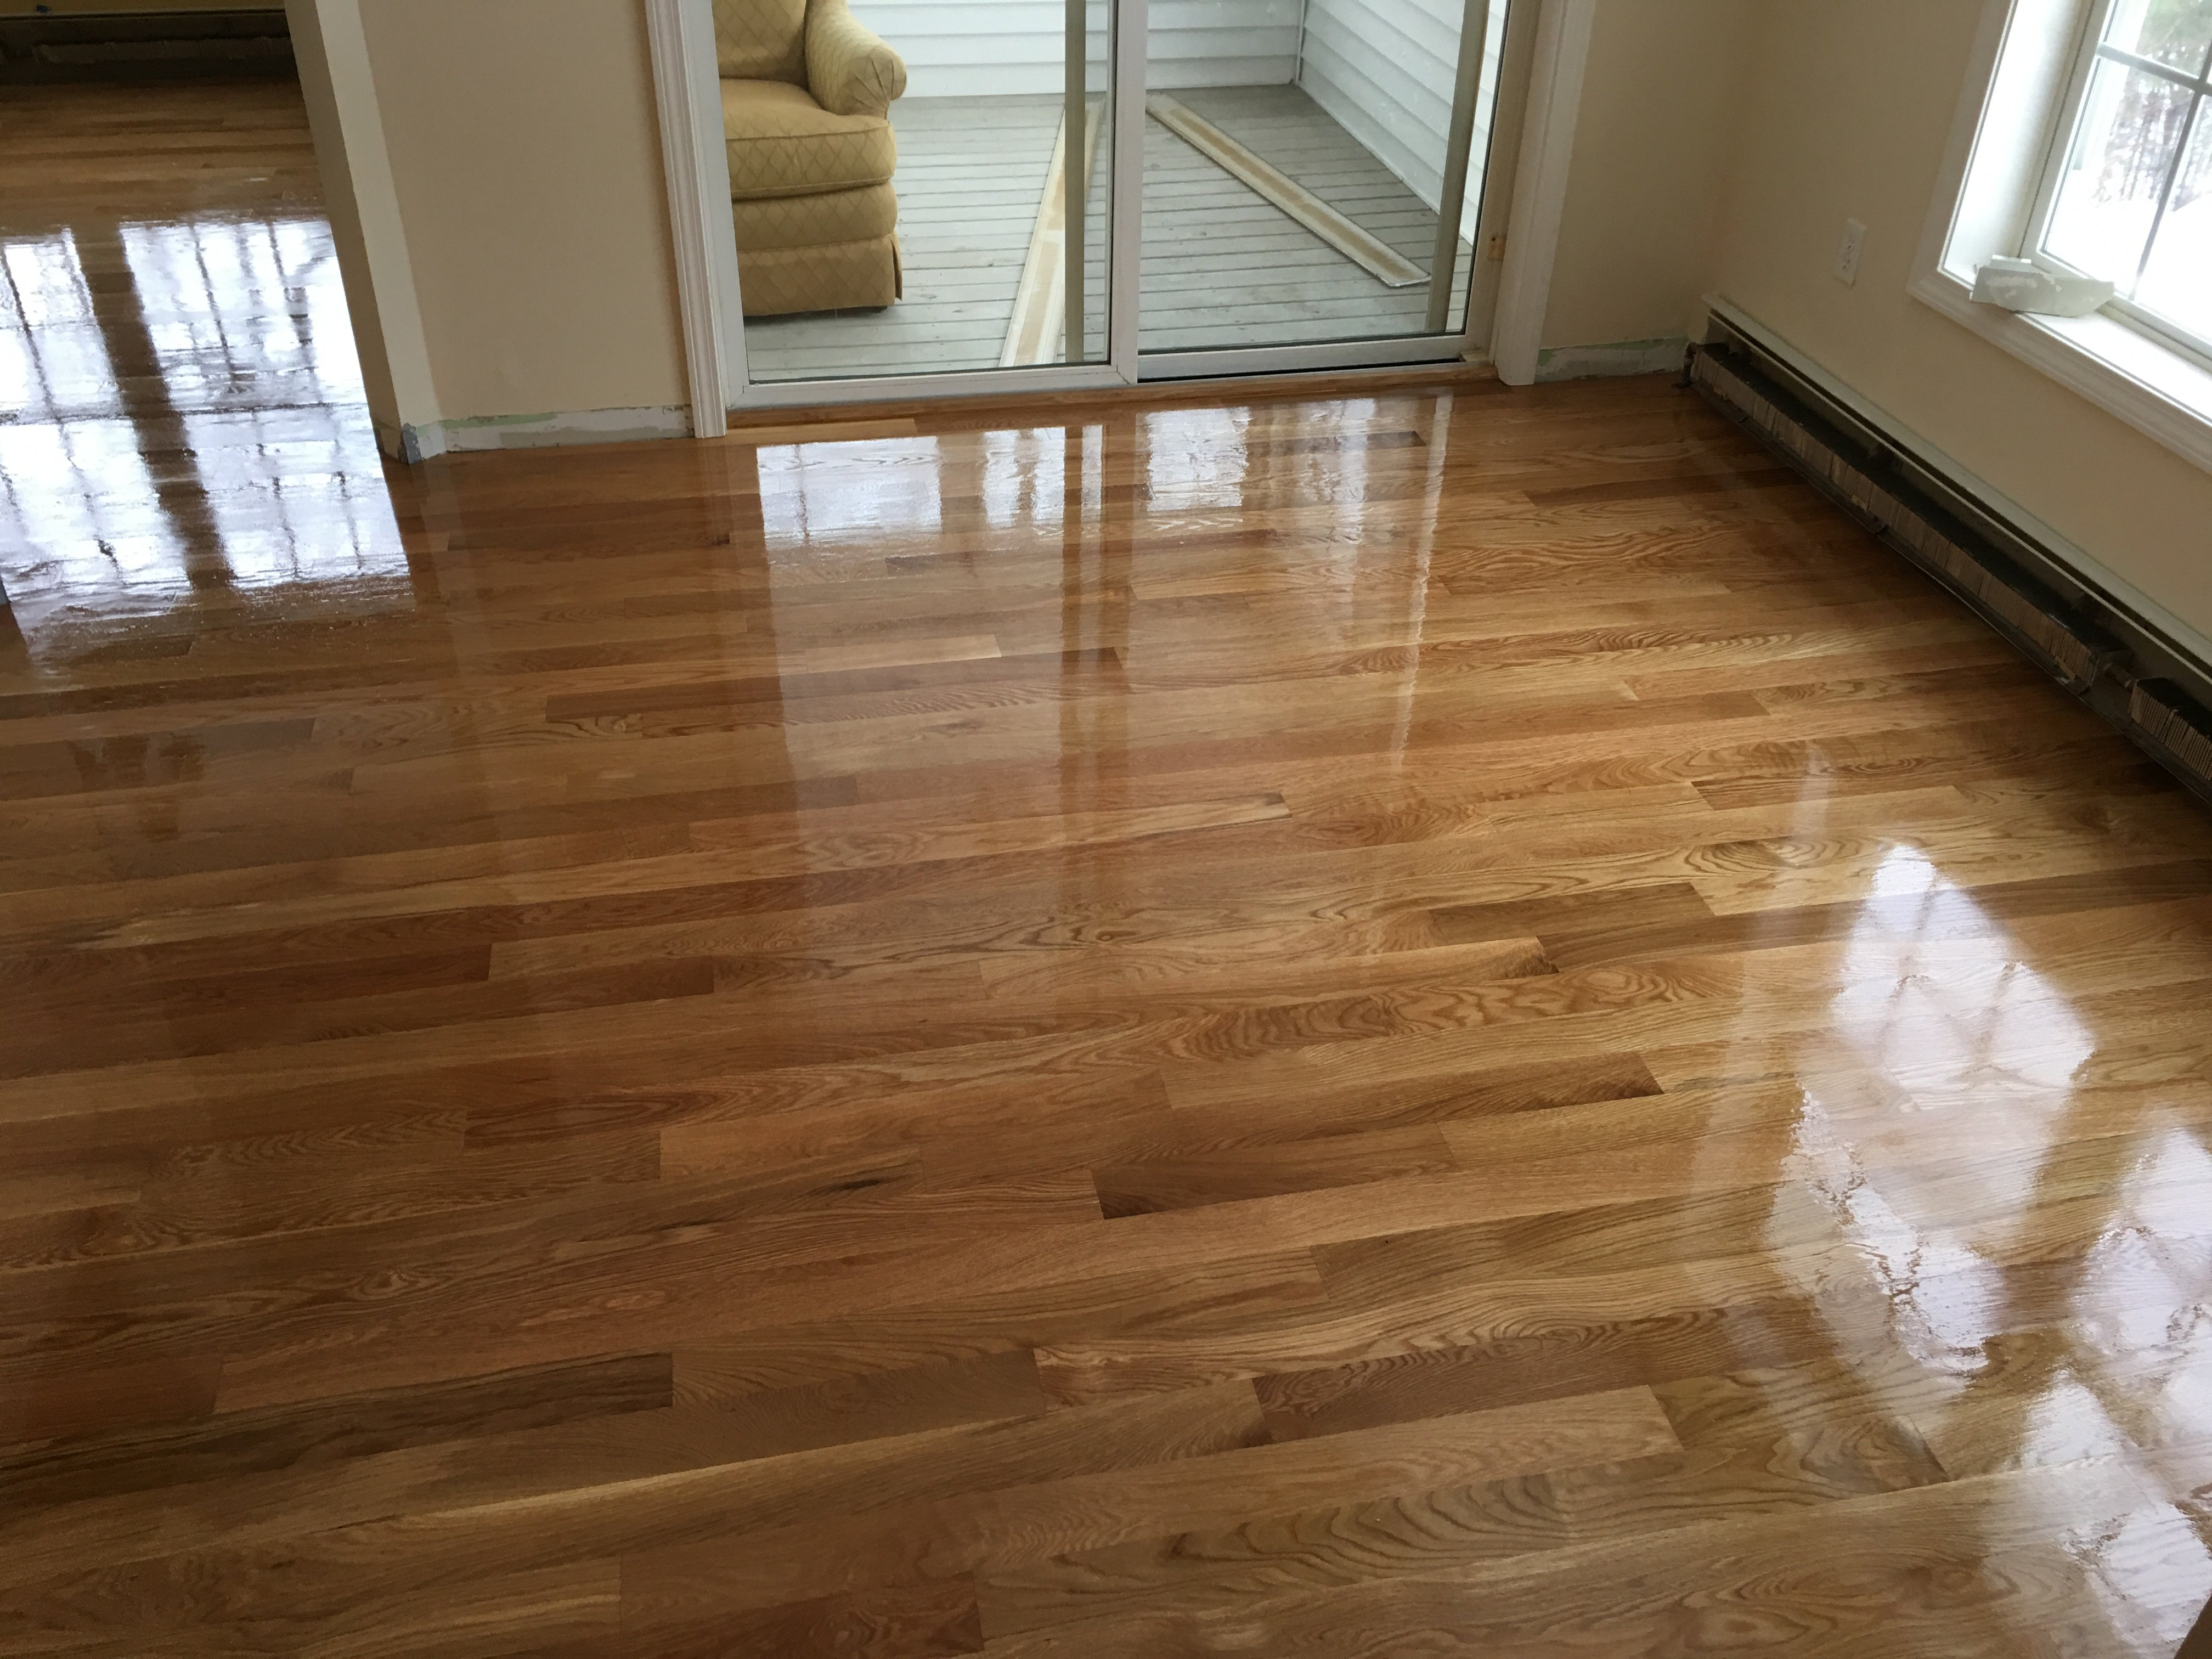 Wood Floor Installations Manchester, NH